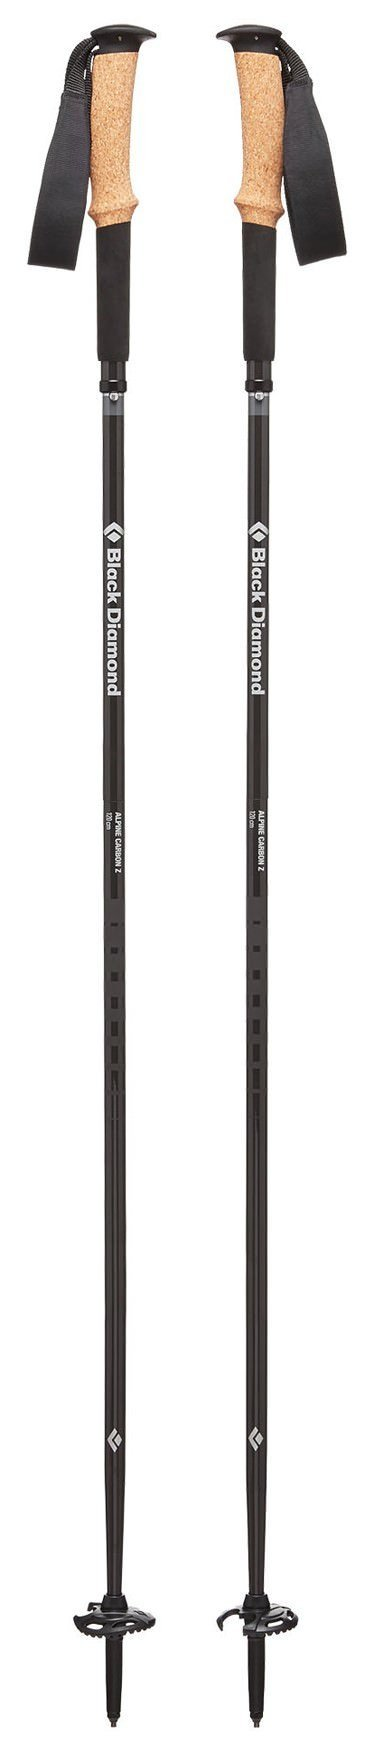 Alpine Carbon Z Trekking Poles - 1 Shot Gear